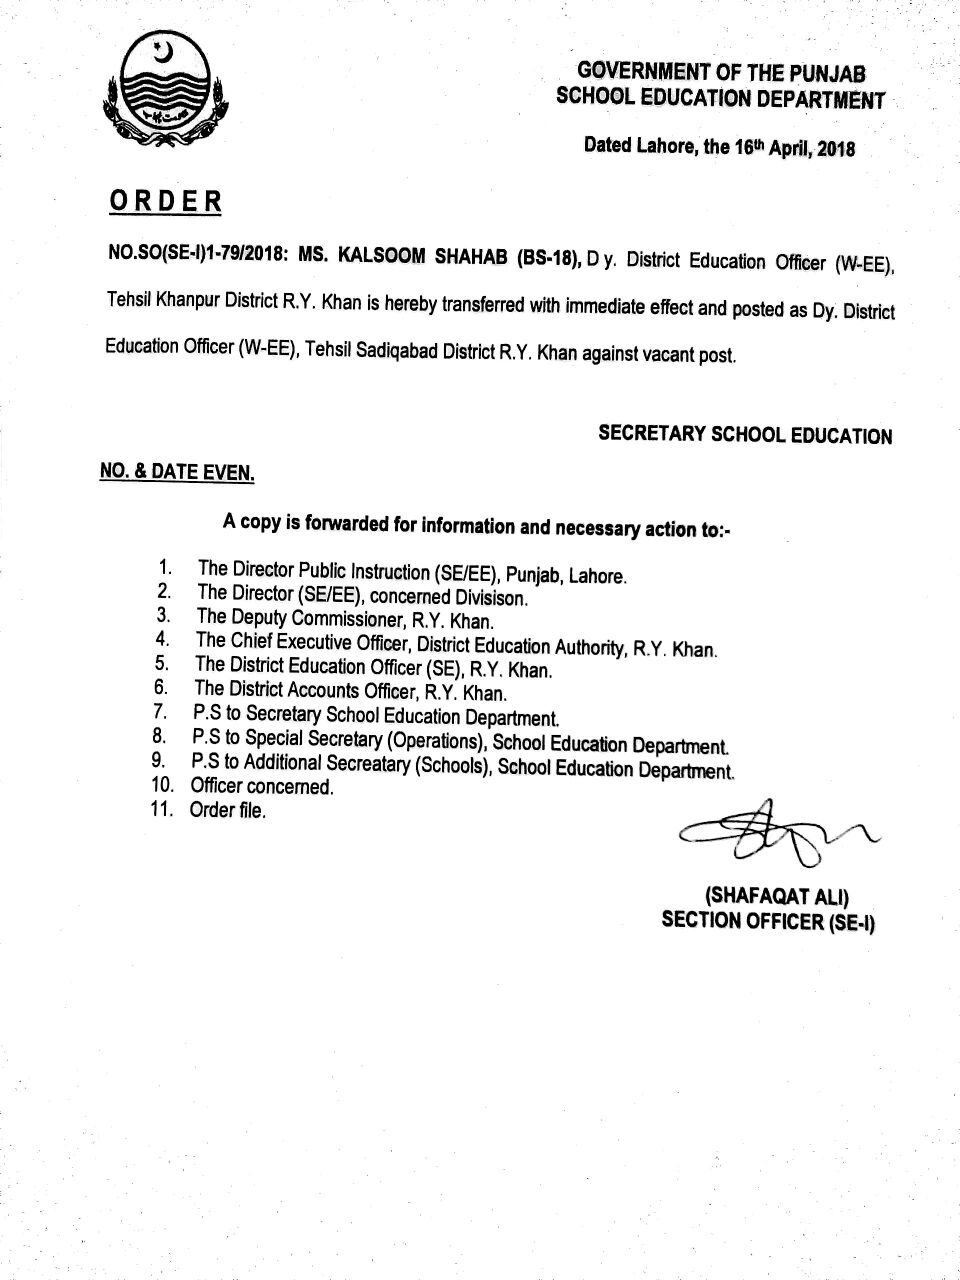 Dy. DISTRICT EDUCATION OFFICER EE-W KHANPUR TRANSFERRED TO SADIQ ABAD